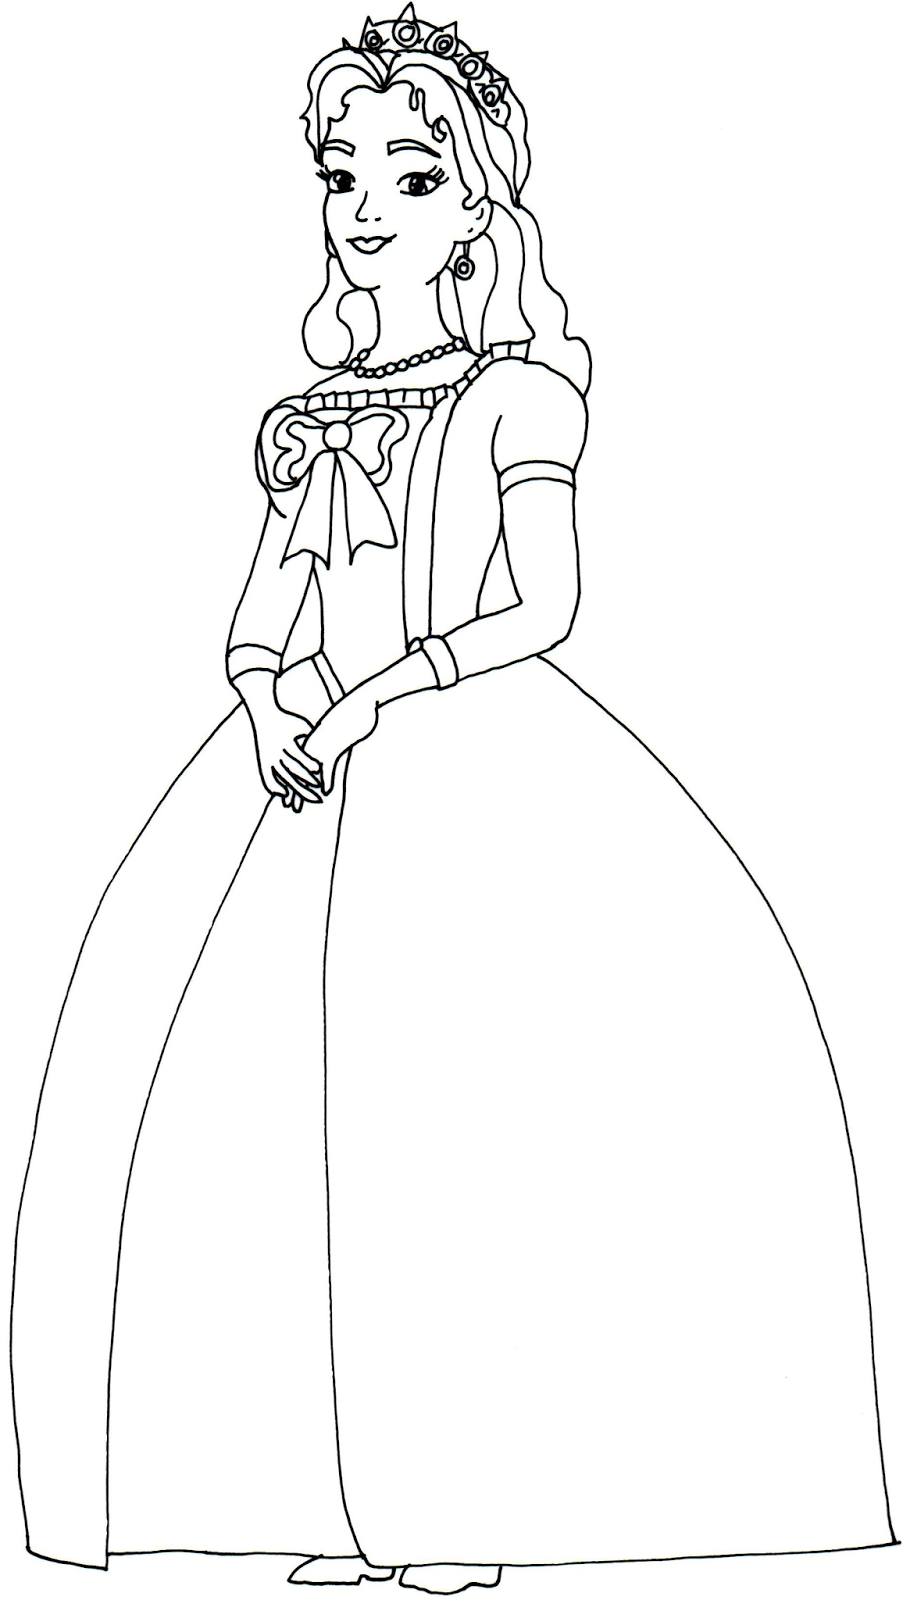 Sofia the First Printable Mermaids Coloring Page Printable